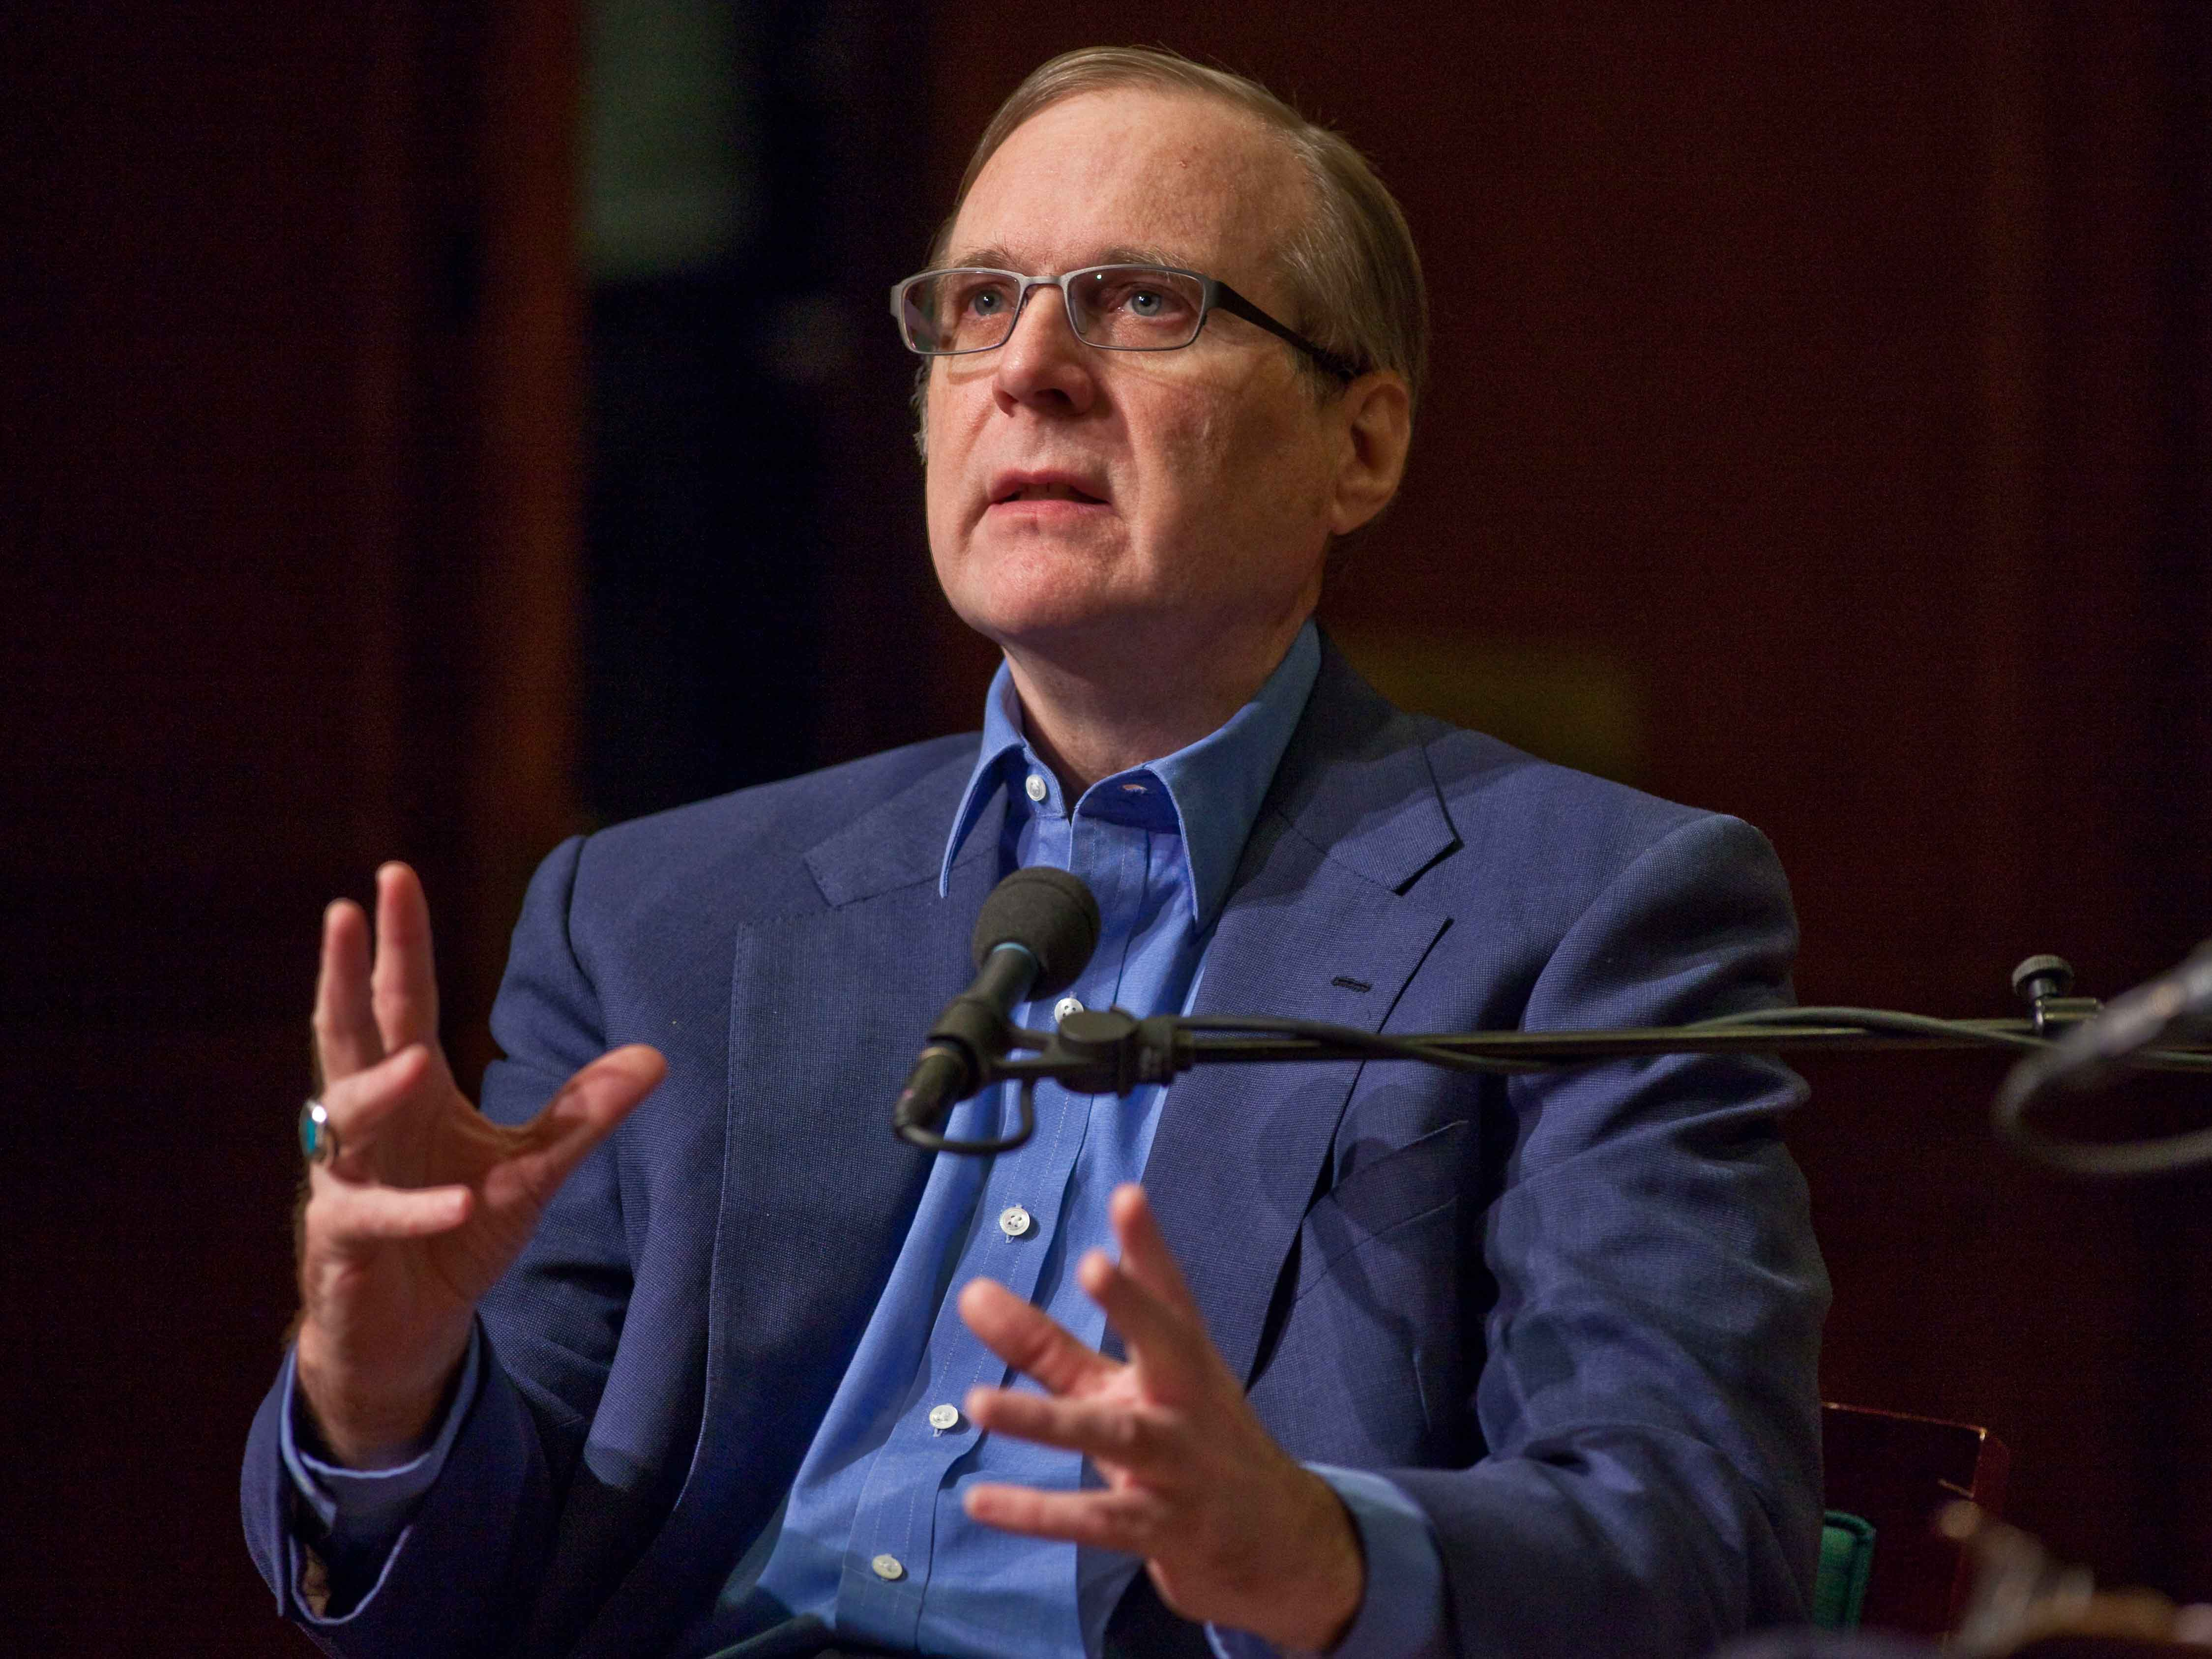 Paul Allen speaks during an event at the 92nd Street Y in New York. Allen co-founded Microsoft alongside Bill Gates in 1971